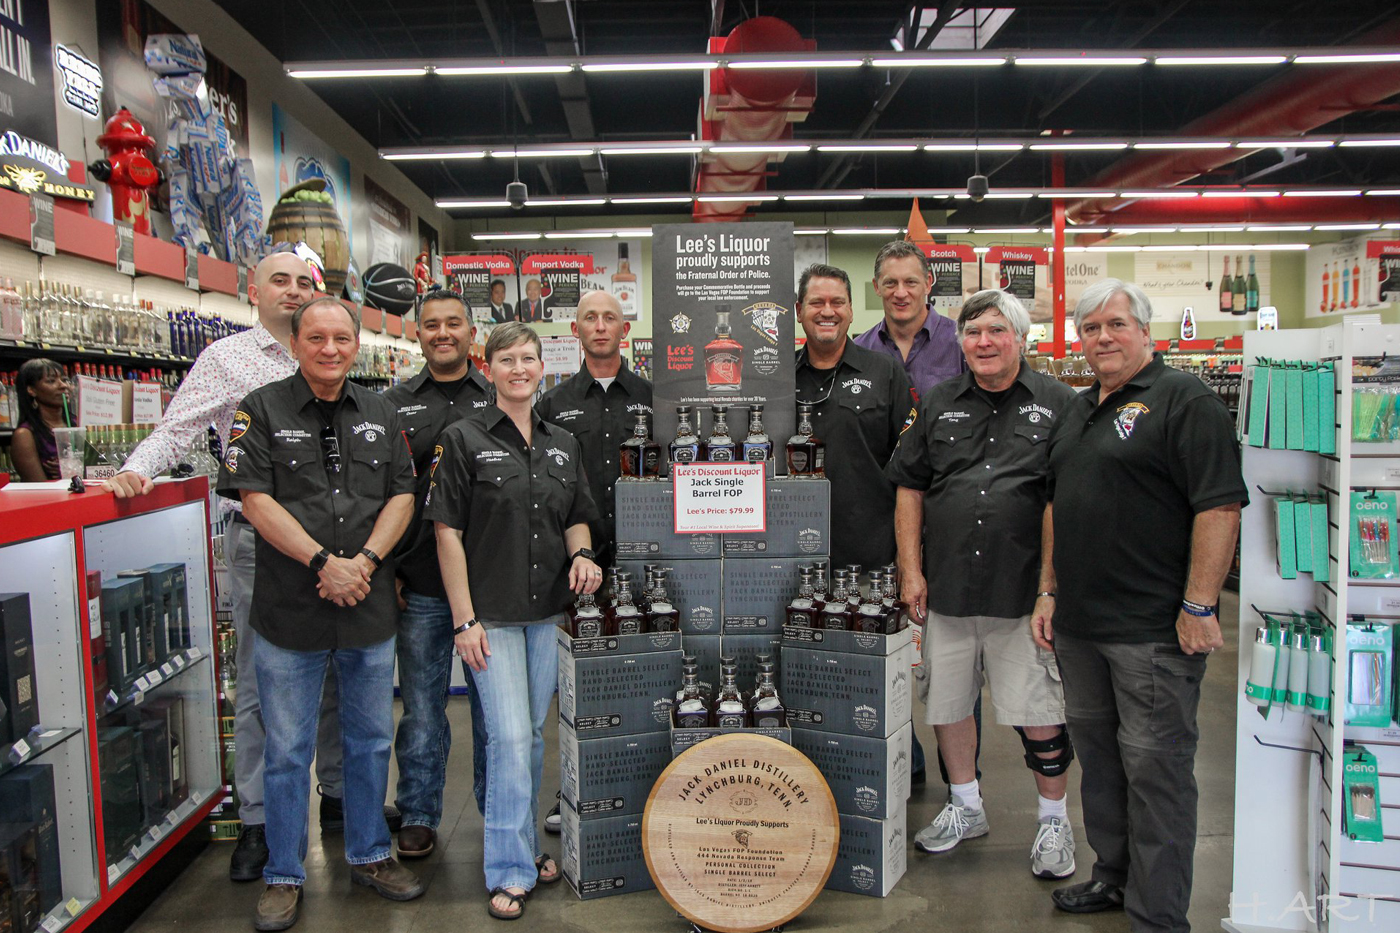 Members of Las Vegas Lodge #1 Fraternal Order of Police around the Jack Daniel's display